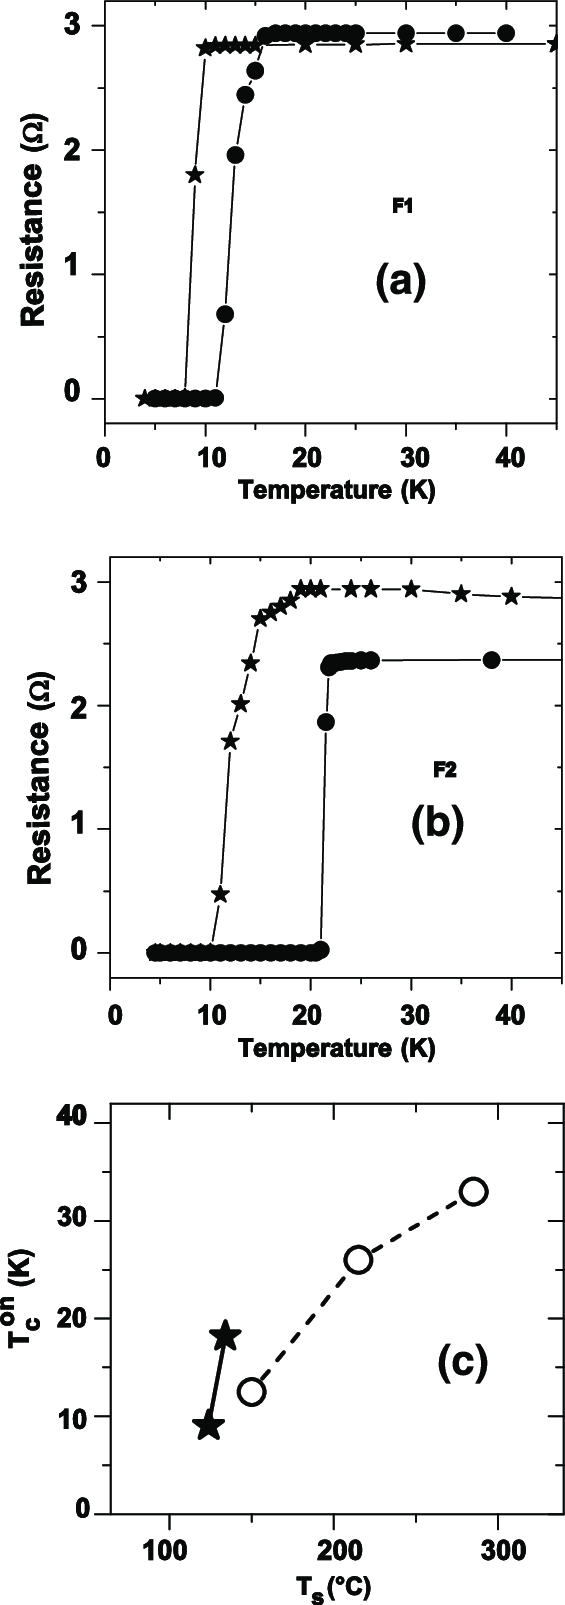 medium resolution of r t curves of mgb 2 films f1 a and f2 b